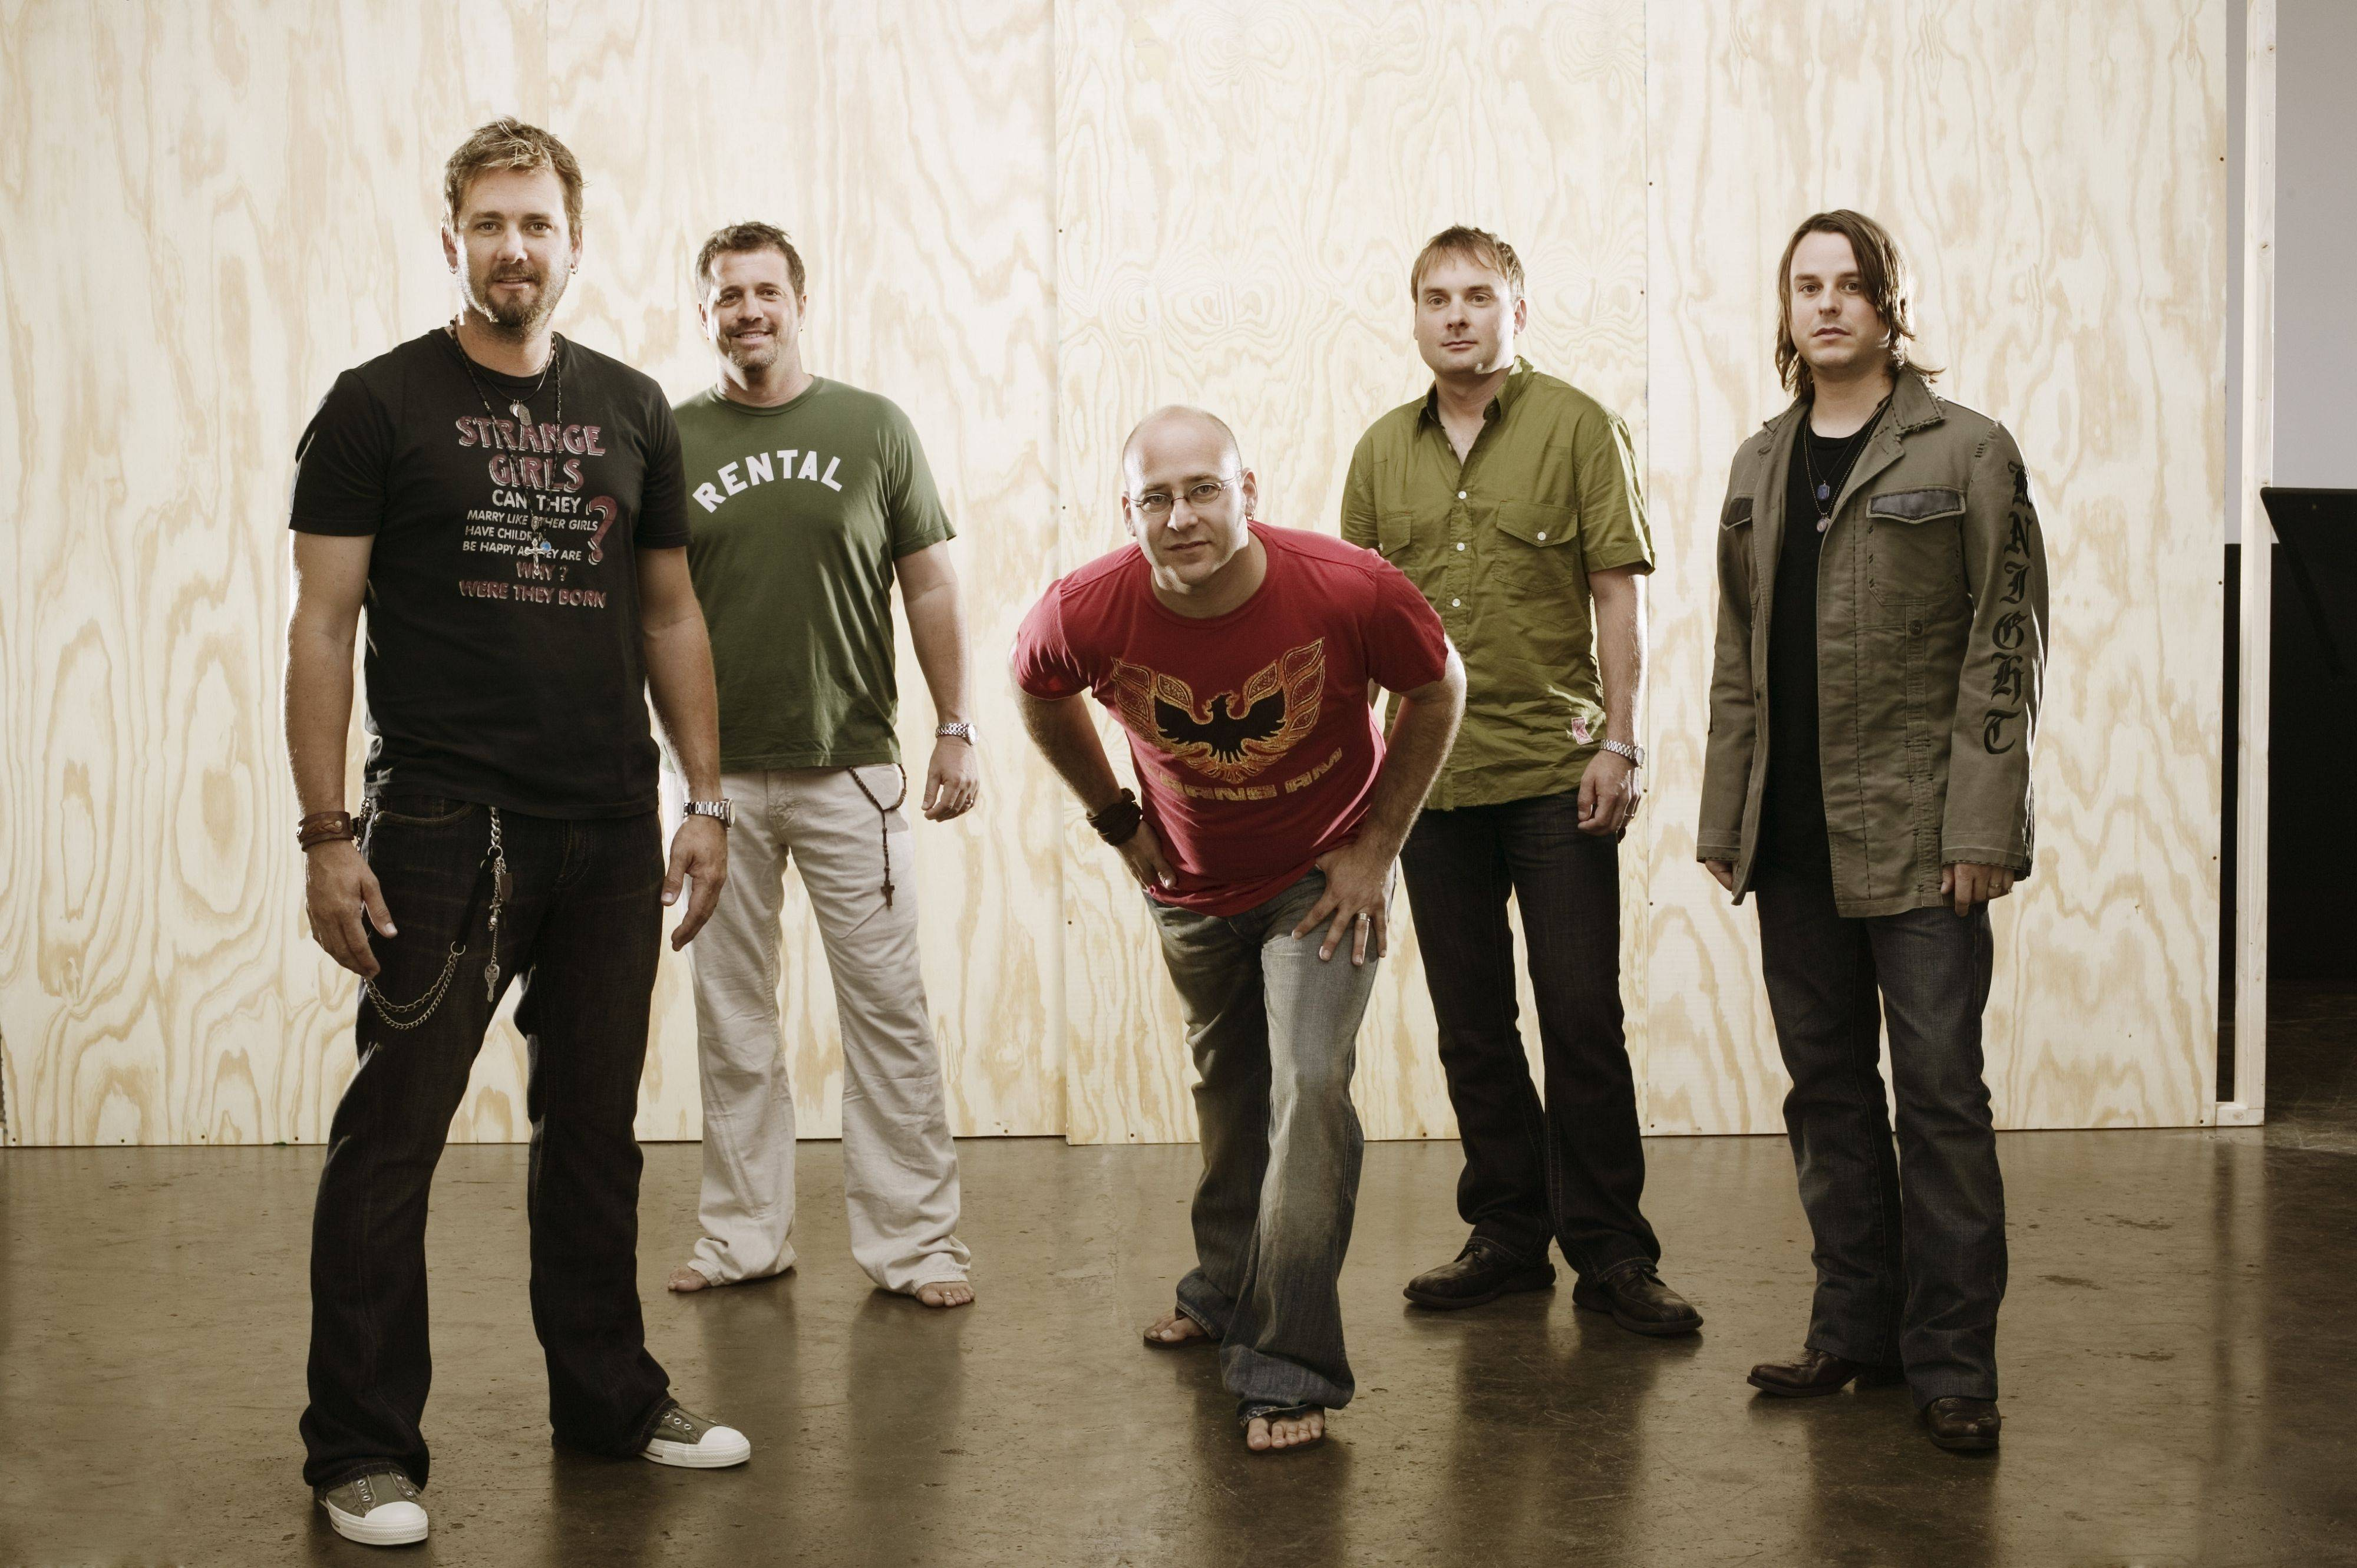 Sister Hazel, which performed in Naperville in 2006, returns to perform Saturday at Last Fling.